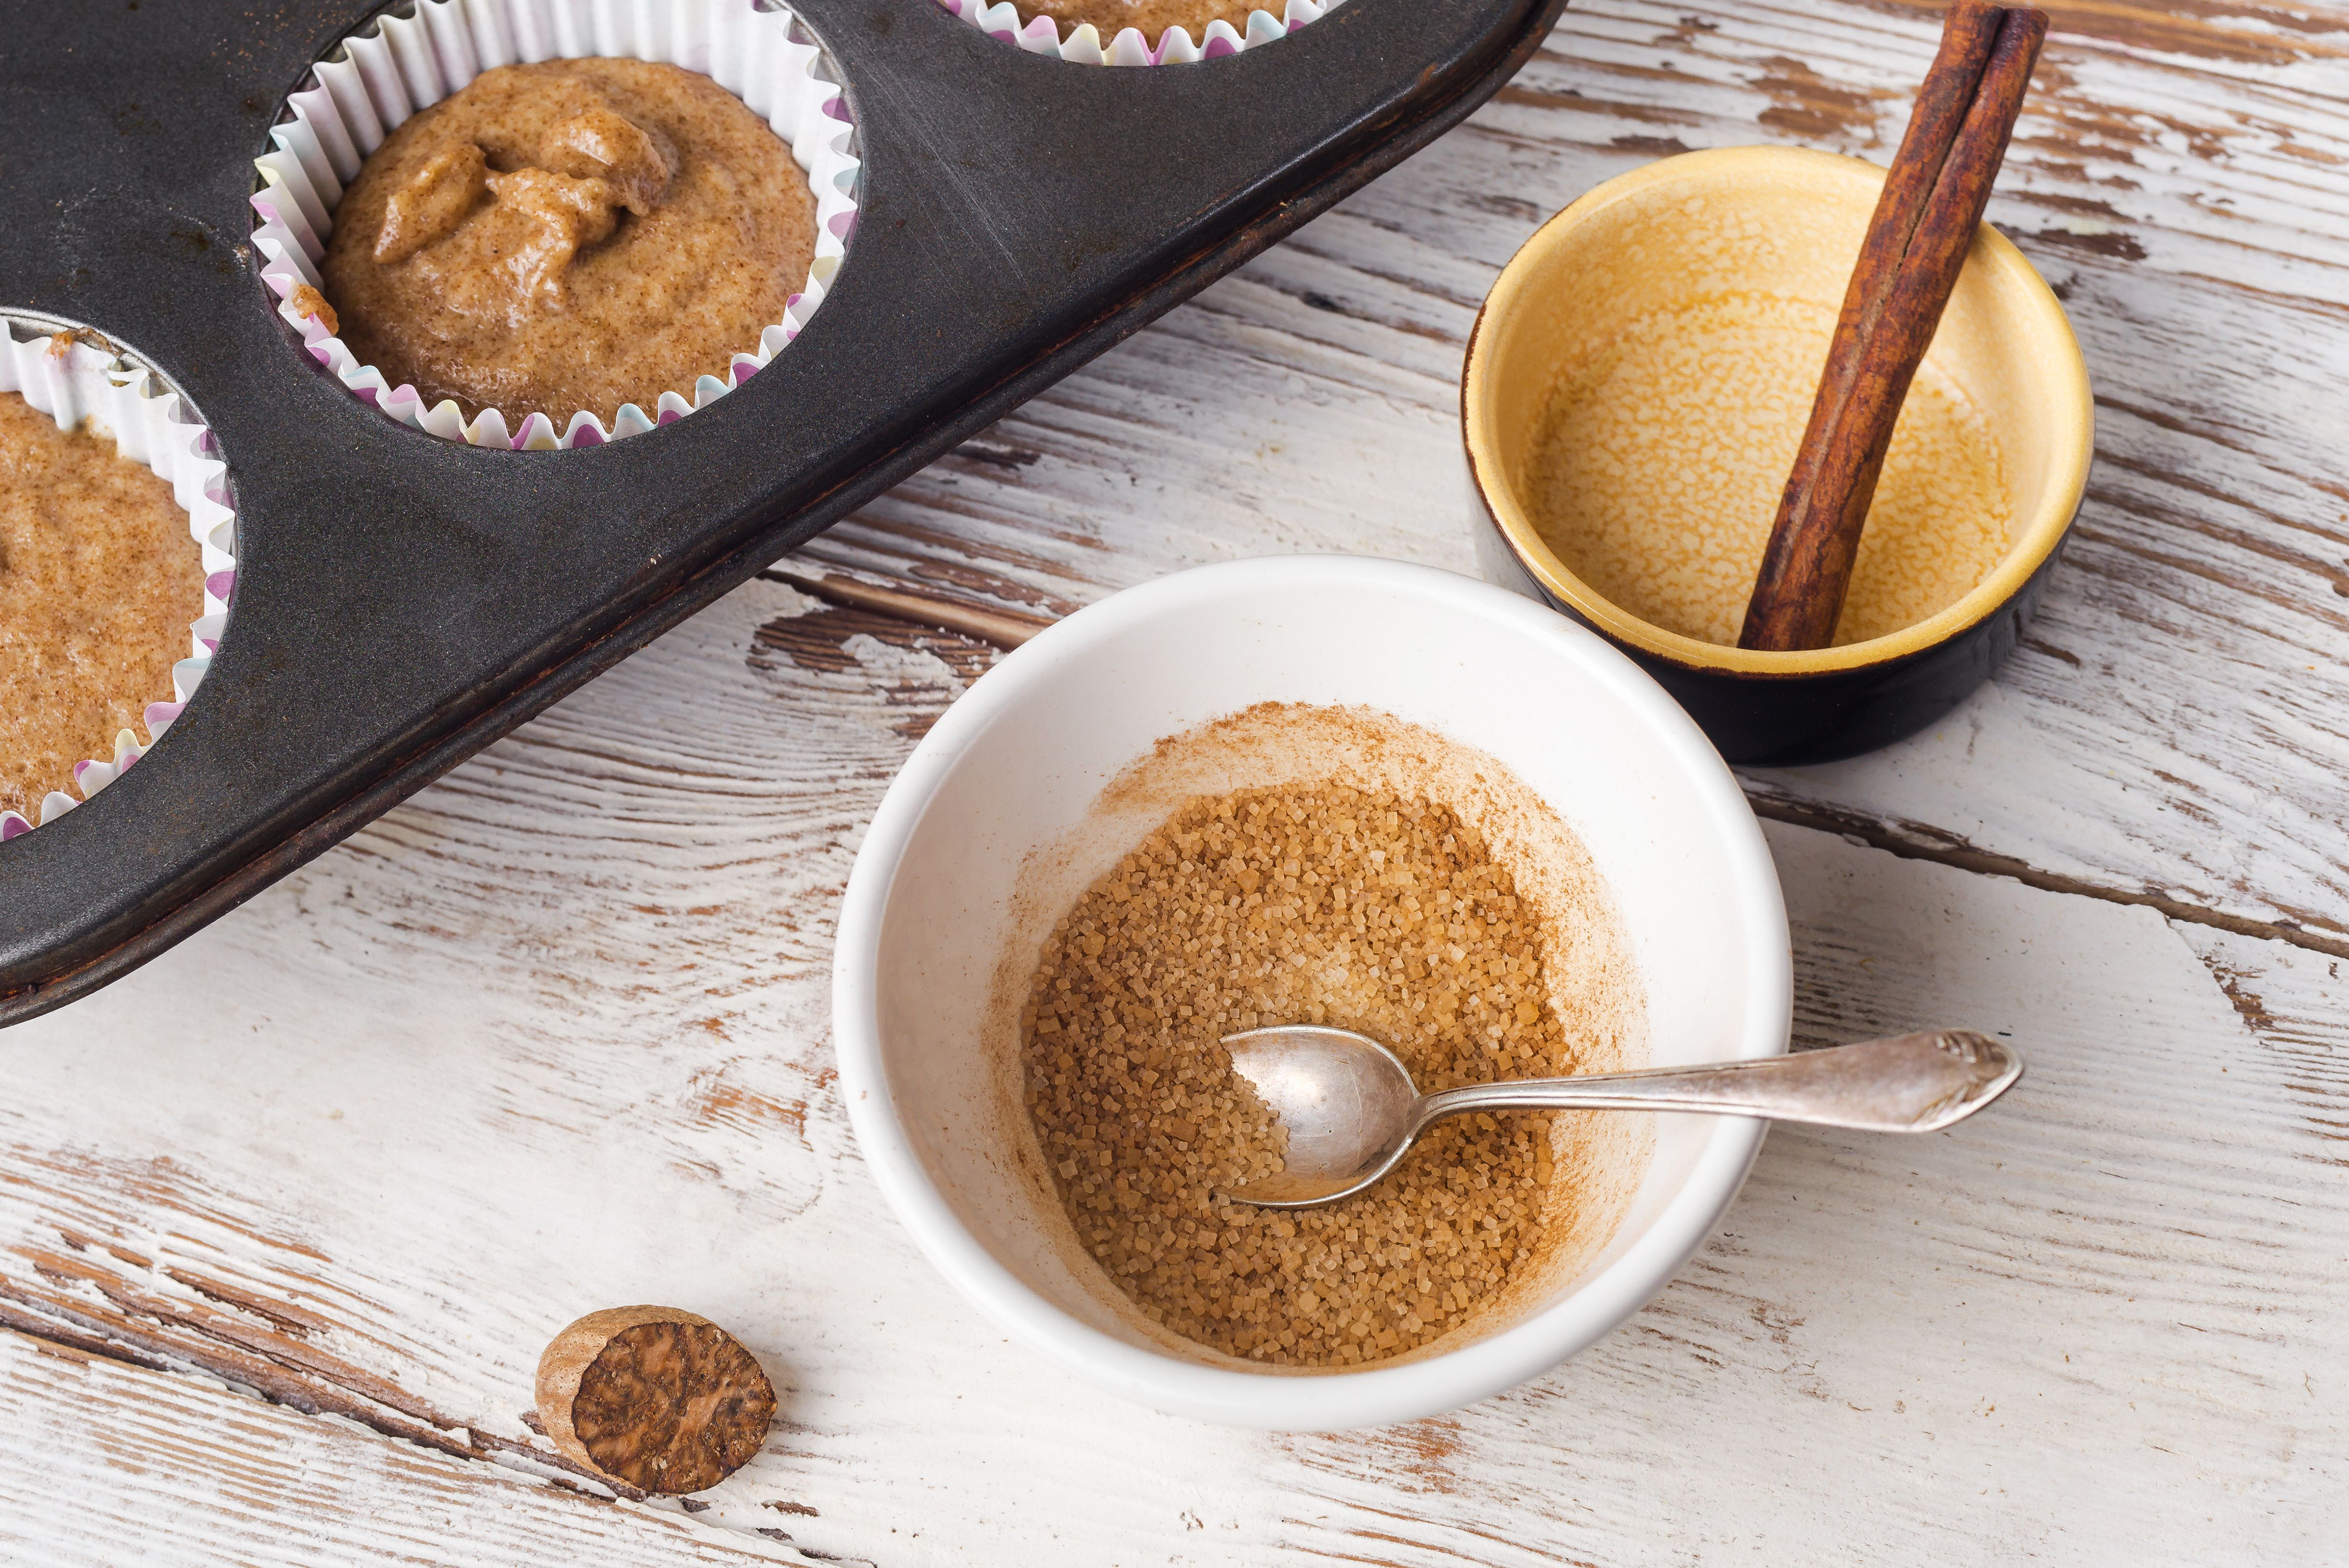 Gluten Free Flax Meal And Almond Flour Muffins Recipe